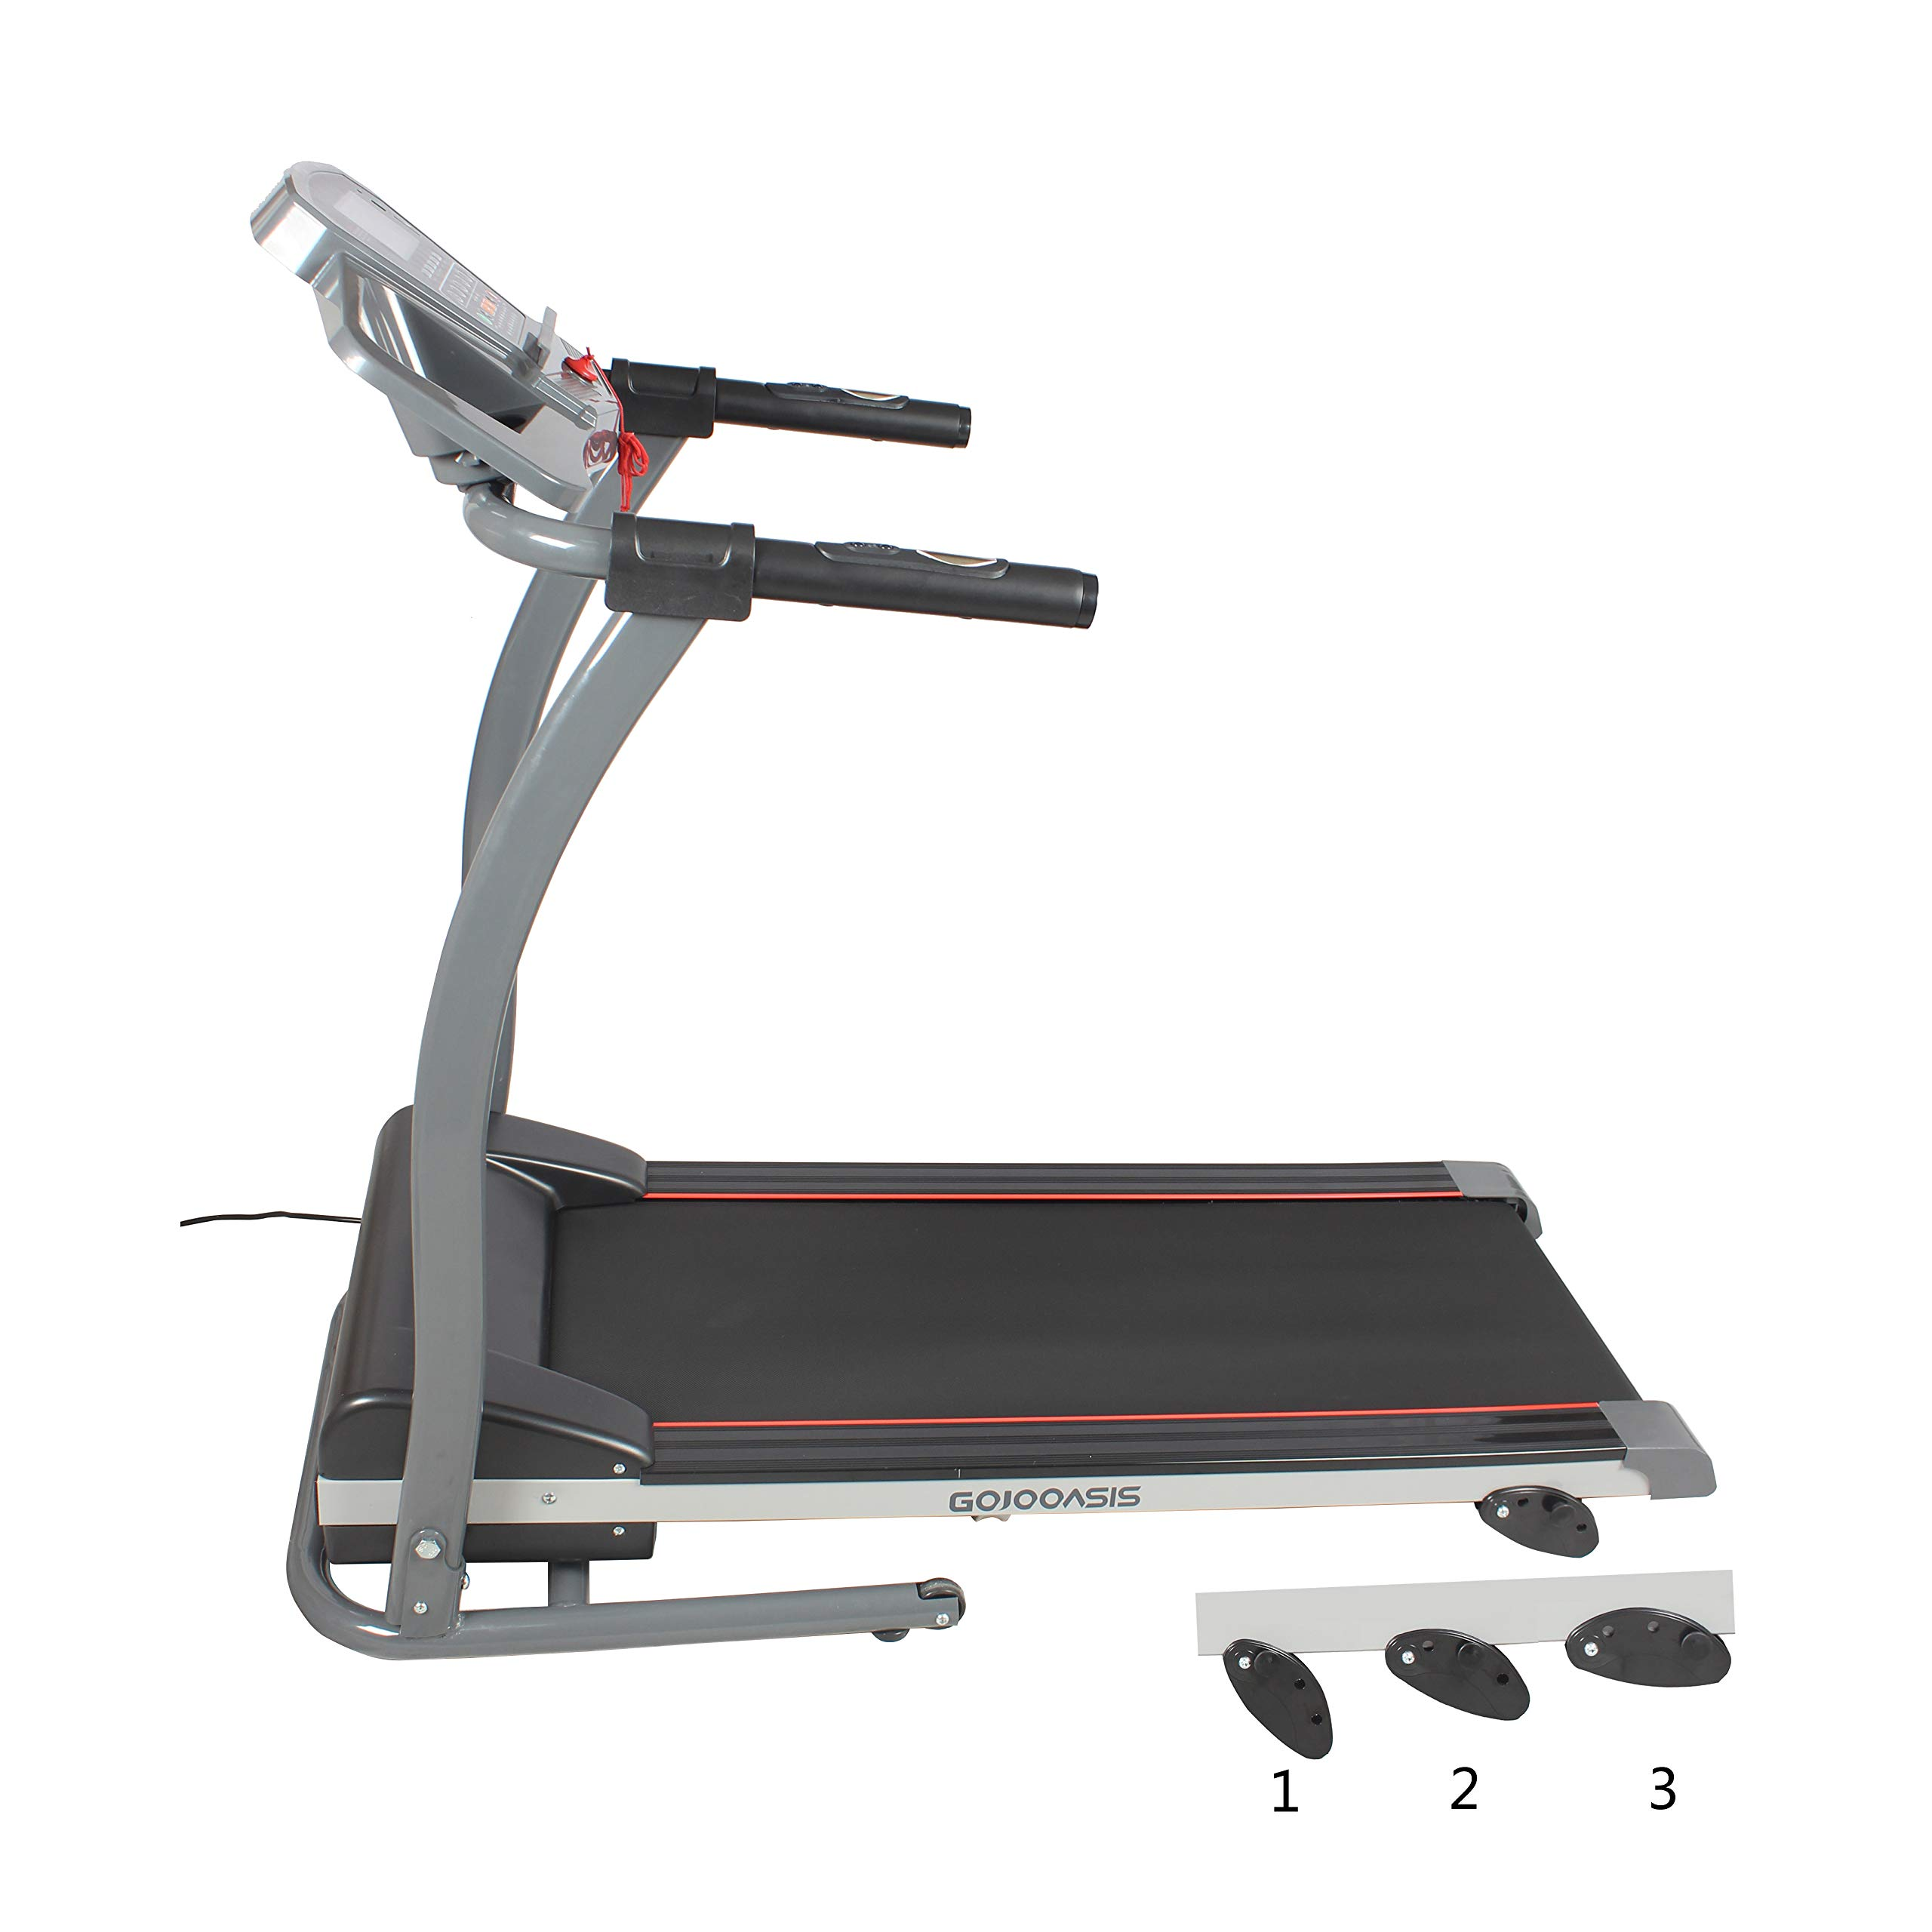 GOJOOASIS 2.0HP Treadmill Folding Motorized Running Exercise Machine w/Incline by GOJOOASIS (Image #4)